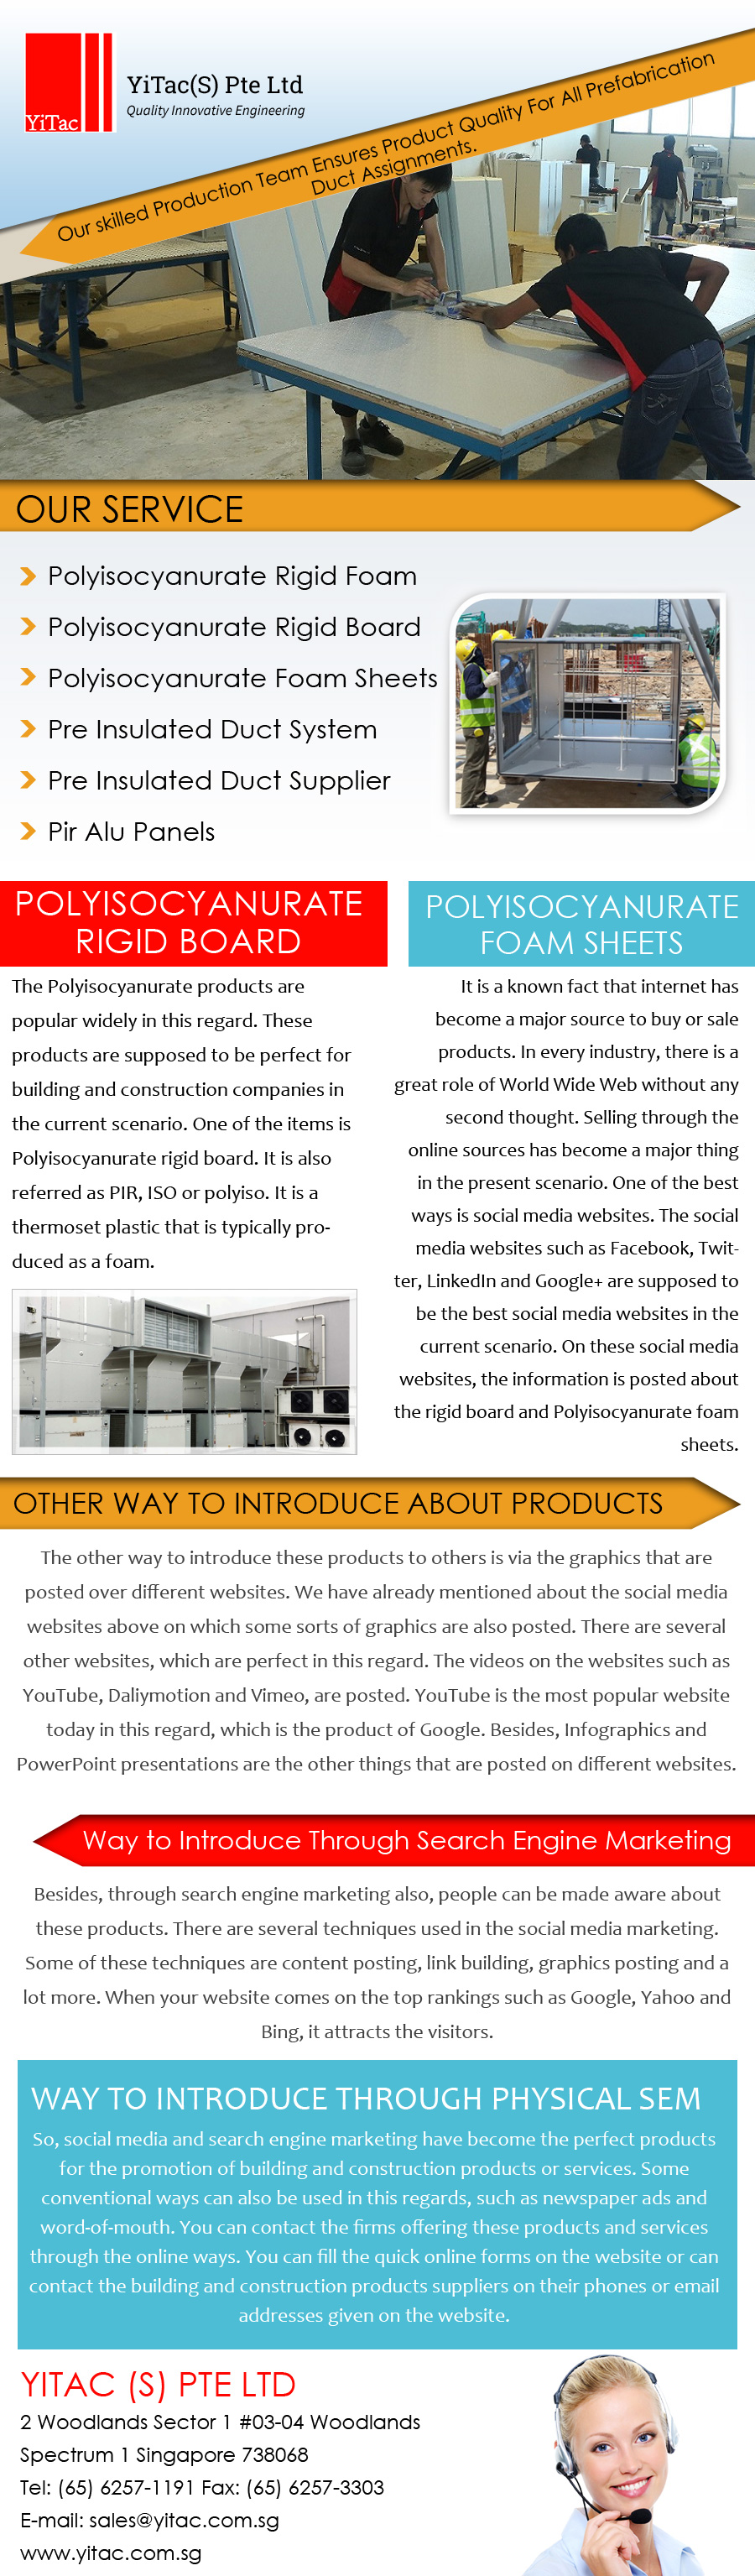 Pin by Yitac Sg on Polyiso Foam Insulation | Foam sheets, Insulation